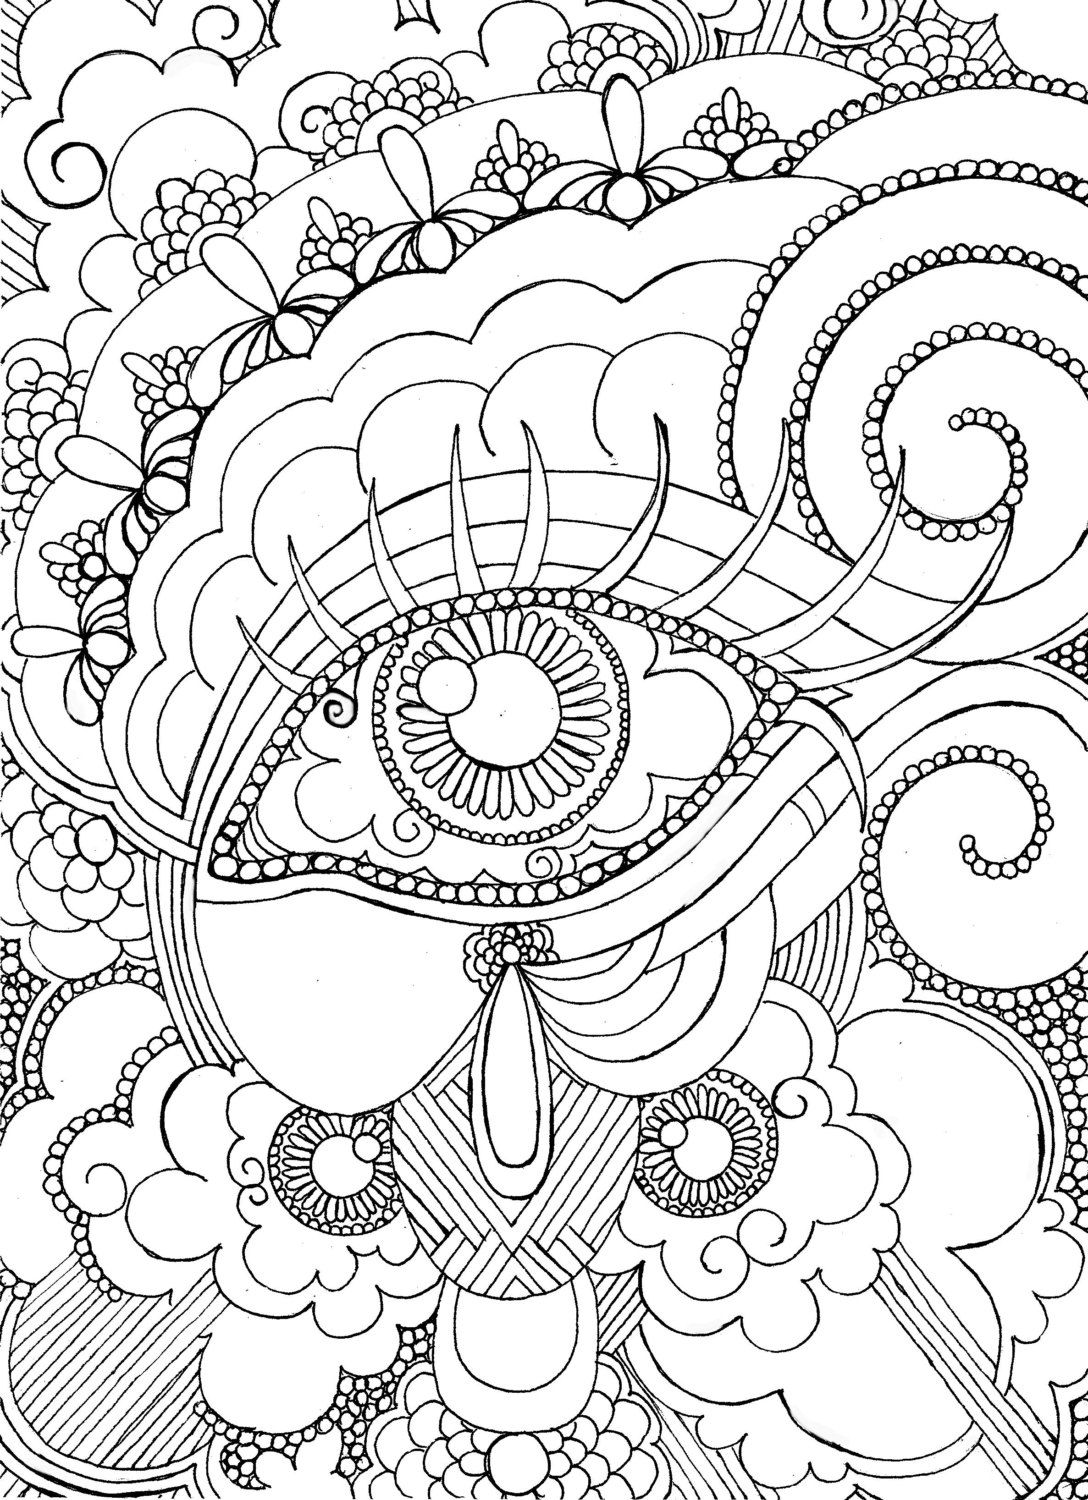 Eye Want To Be Colored Adult Coloring Page By